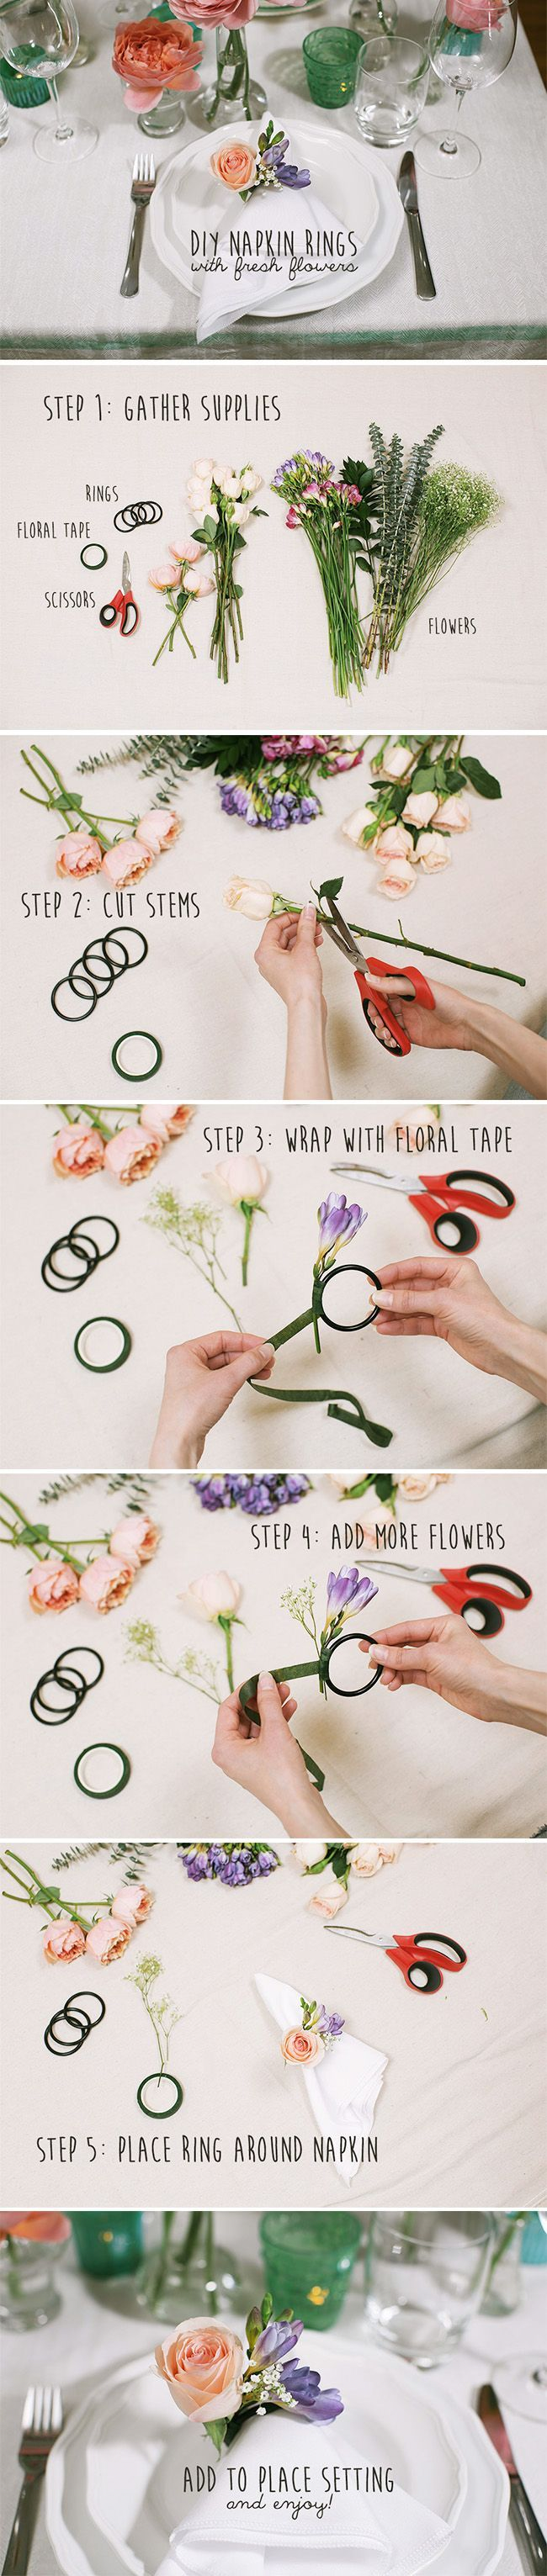 DIY flower napkin rings featuring blooms from FiftyFlowers! View full tutorial here: http://www.weddingbee.com/2014/05/15/fresh-flower-napkin-rings/